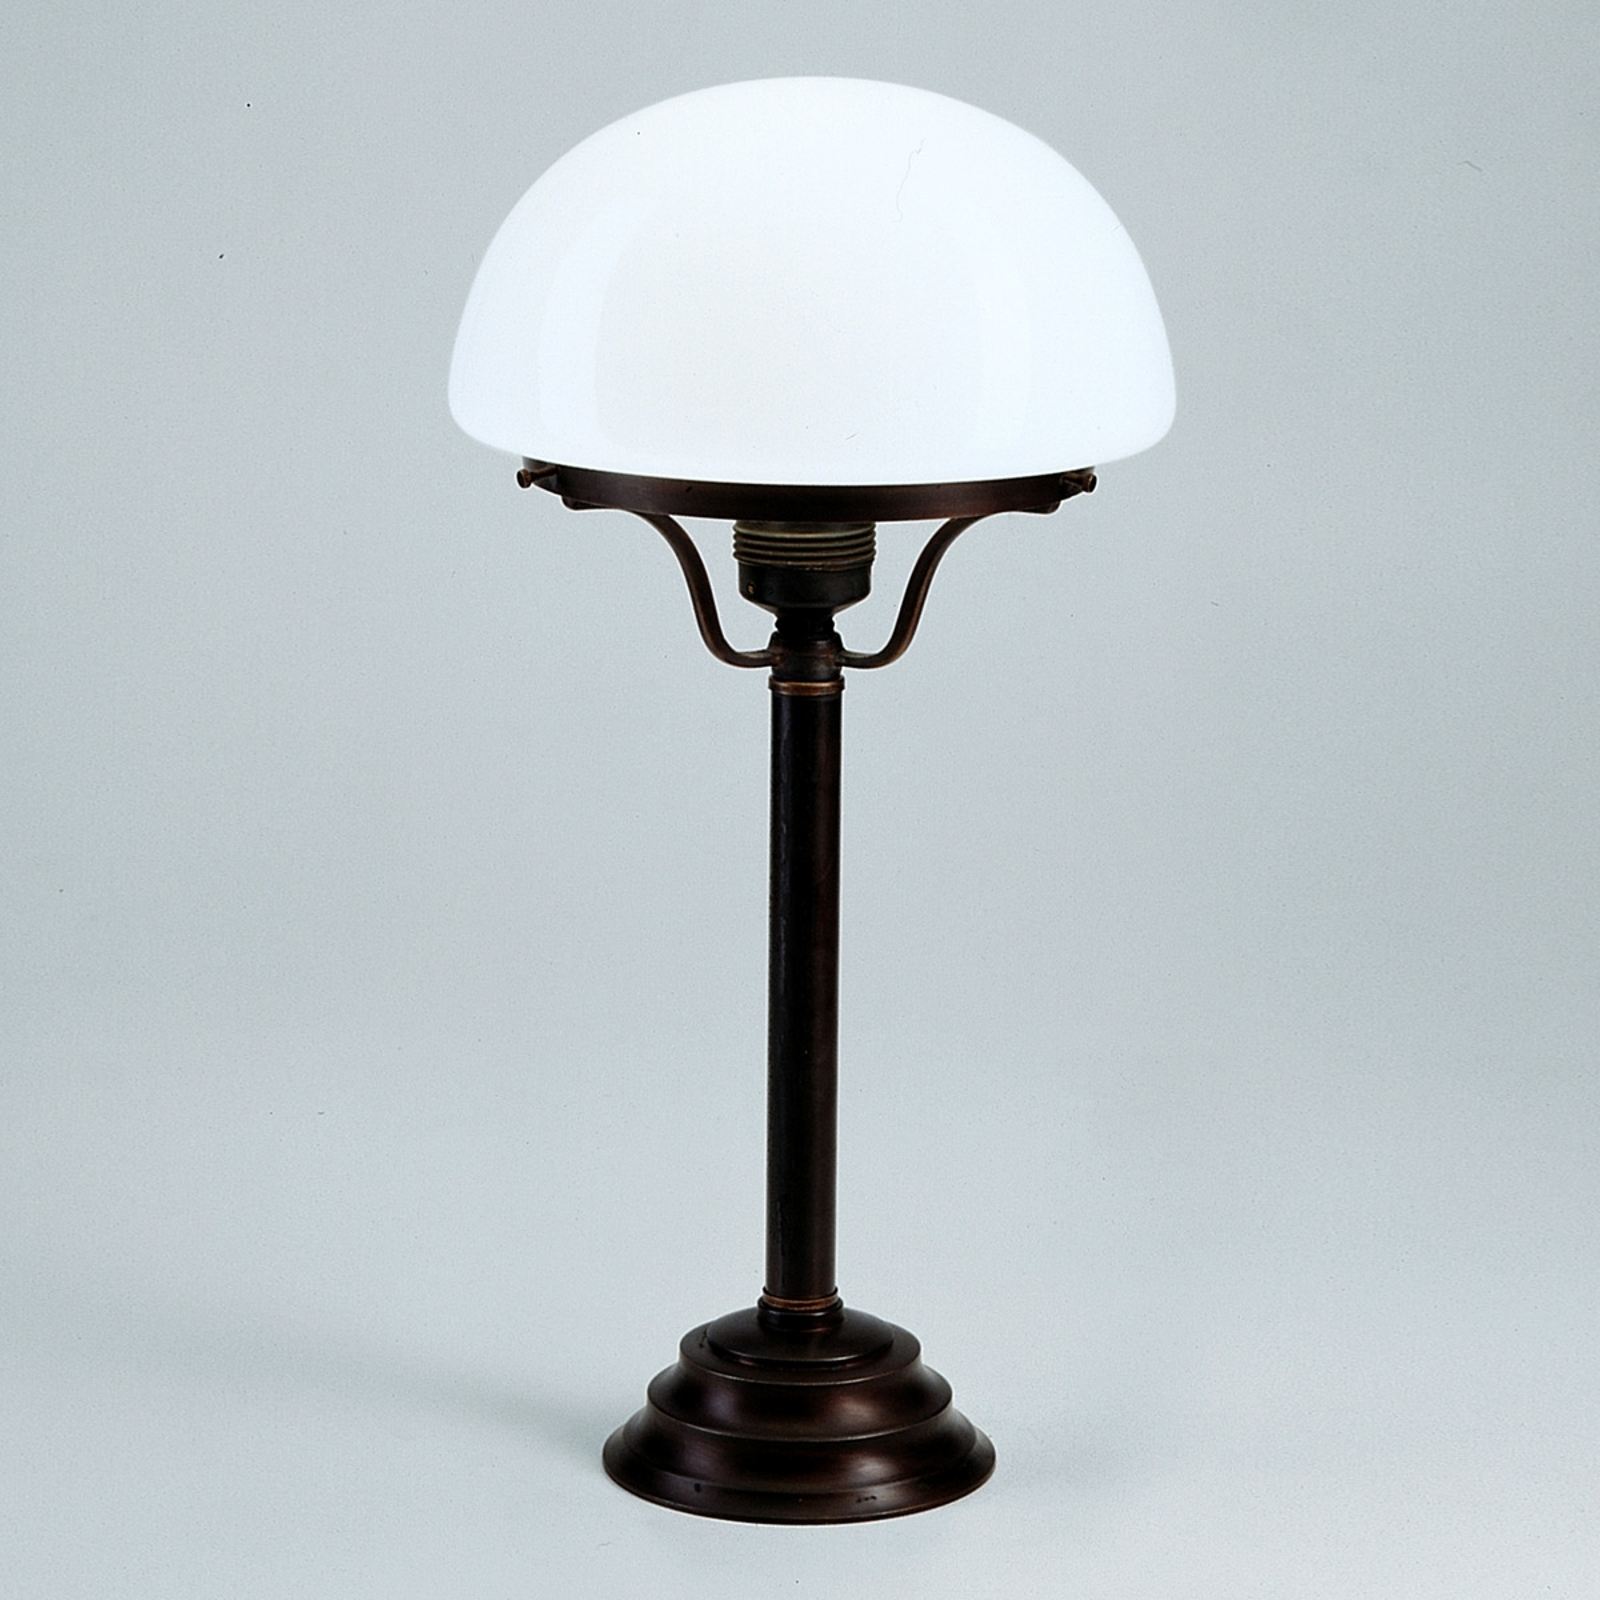 Frank table lamp with antique/rustic appearance_1542048_1